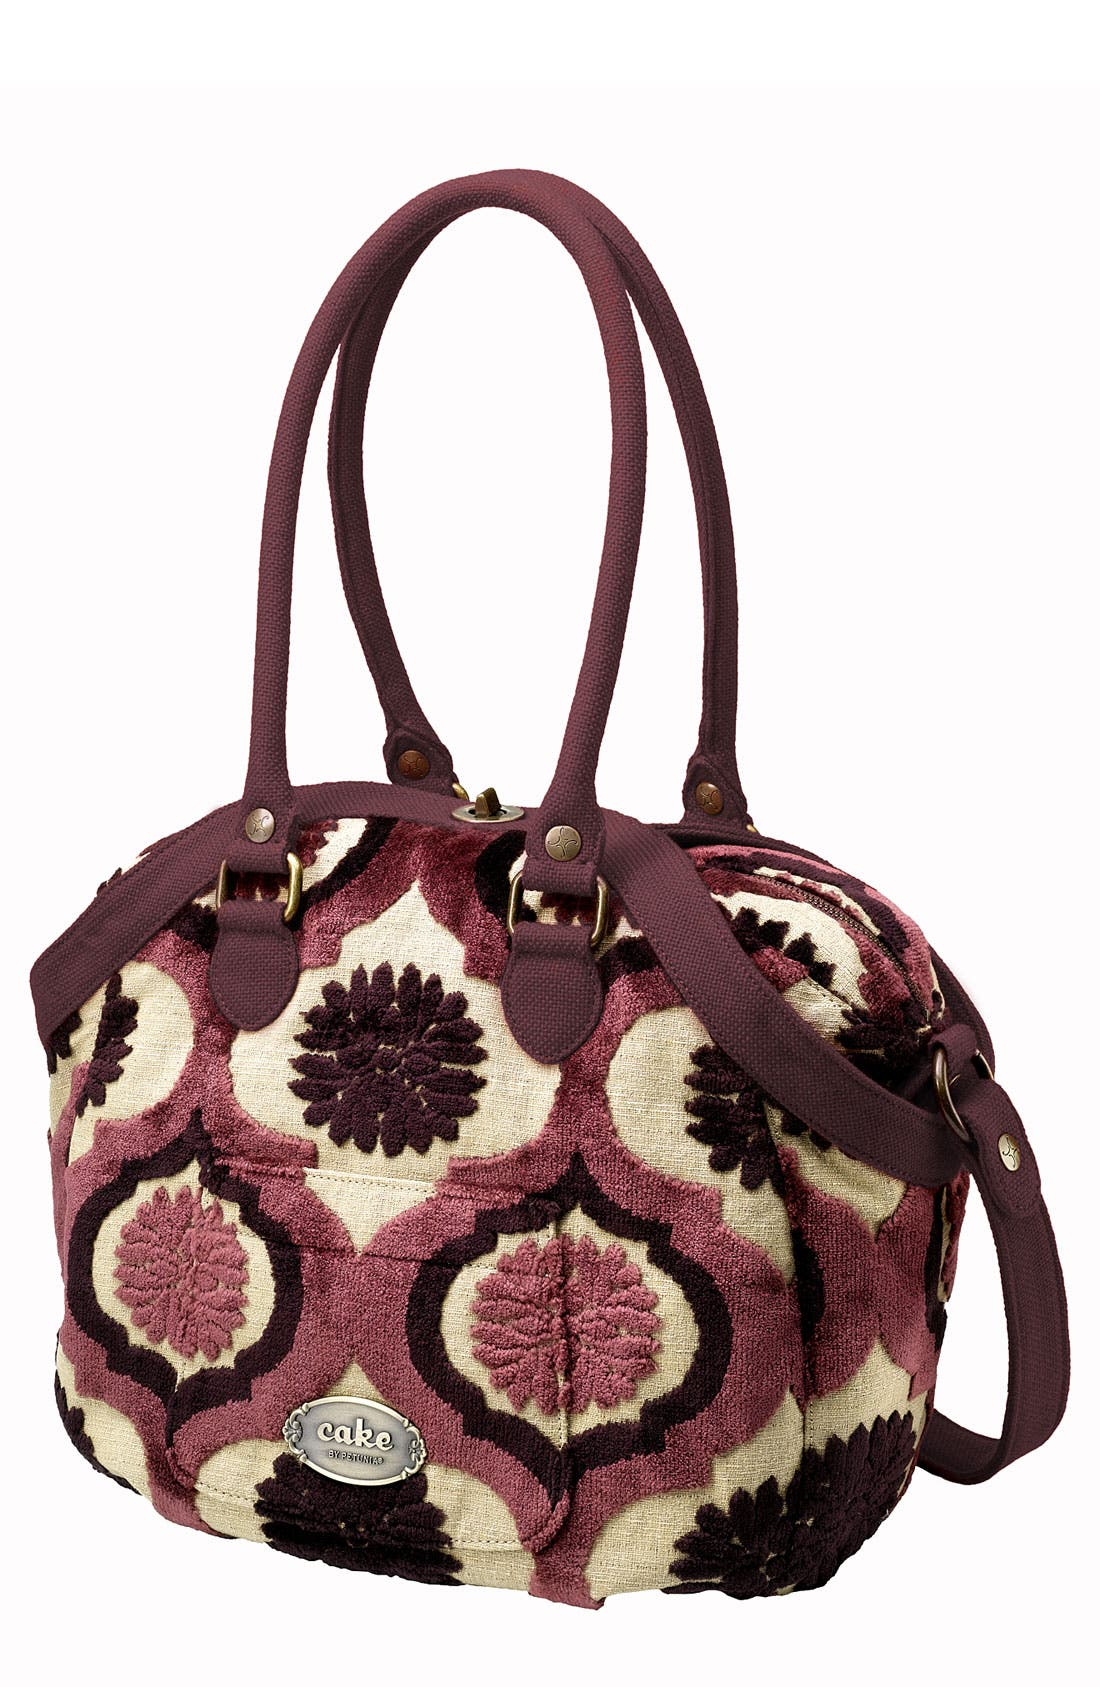 Alternate Image 1 Selected - Petunia Pickle Bottom 'Cake - Hampton Holdall' Diaper Bag